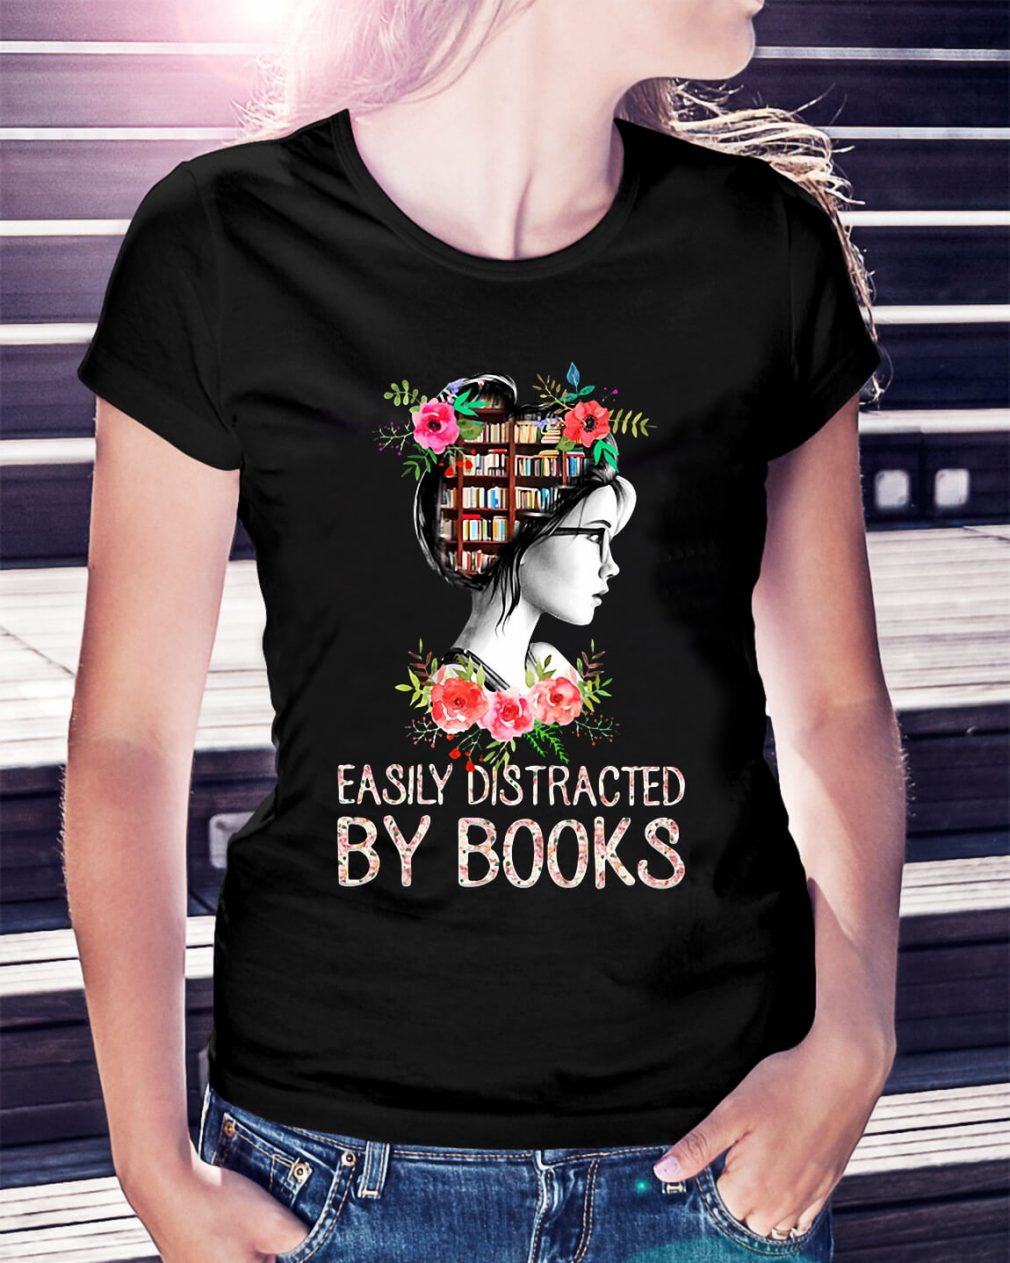 Easily distracted by books shirt